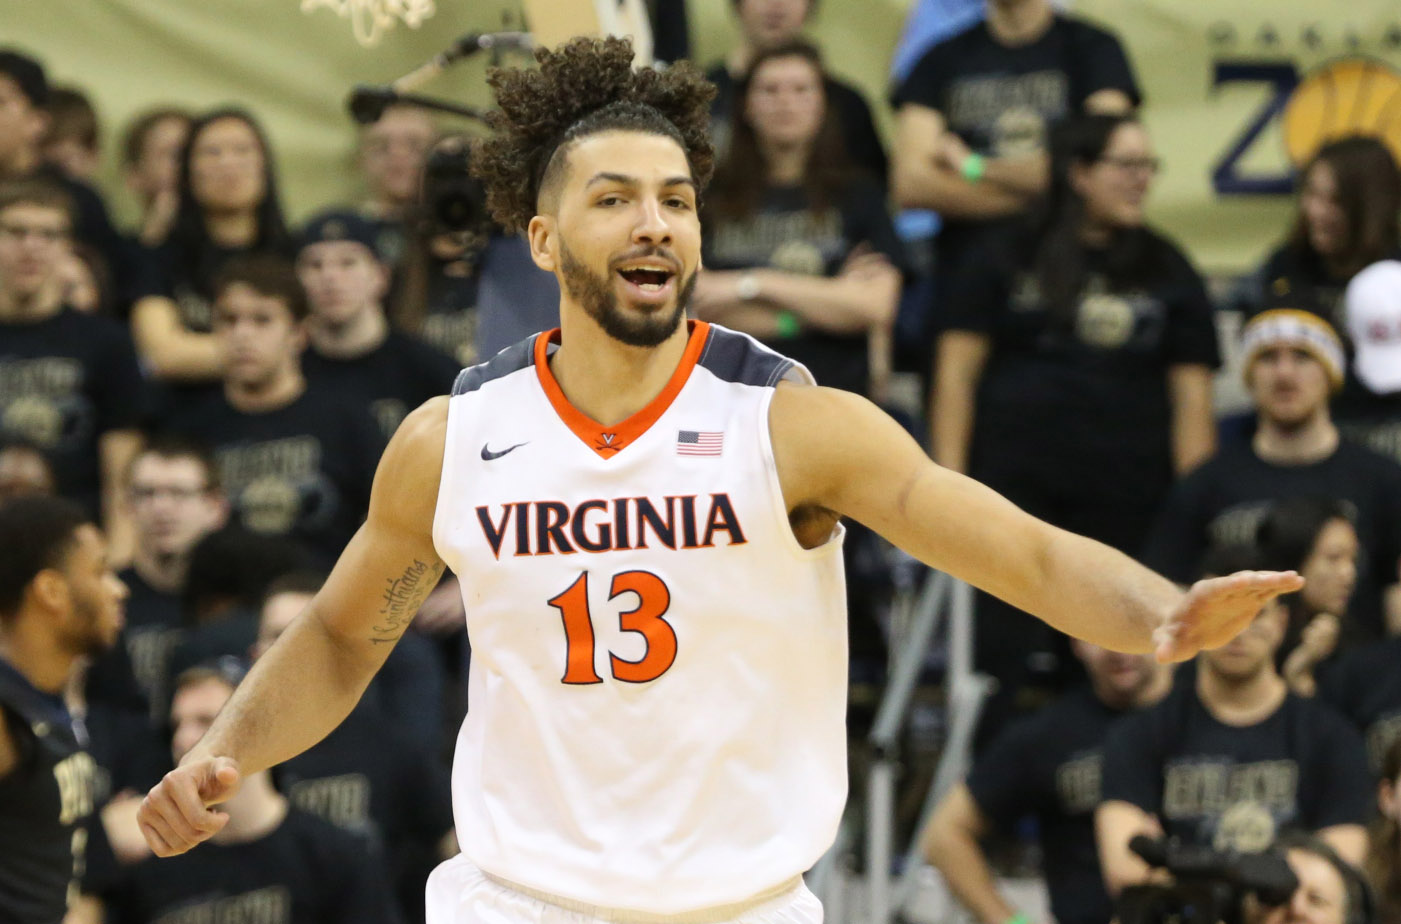 Anthony is excited about Virginia's good week in sports.